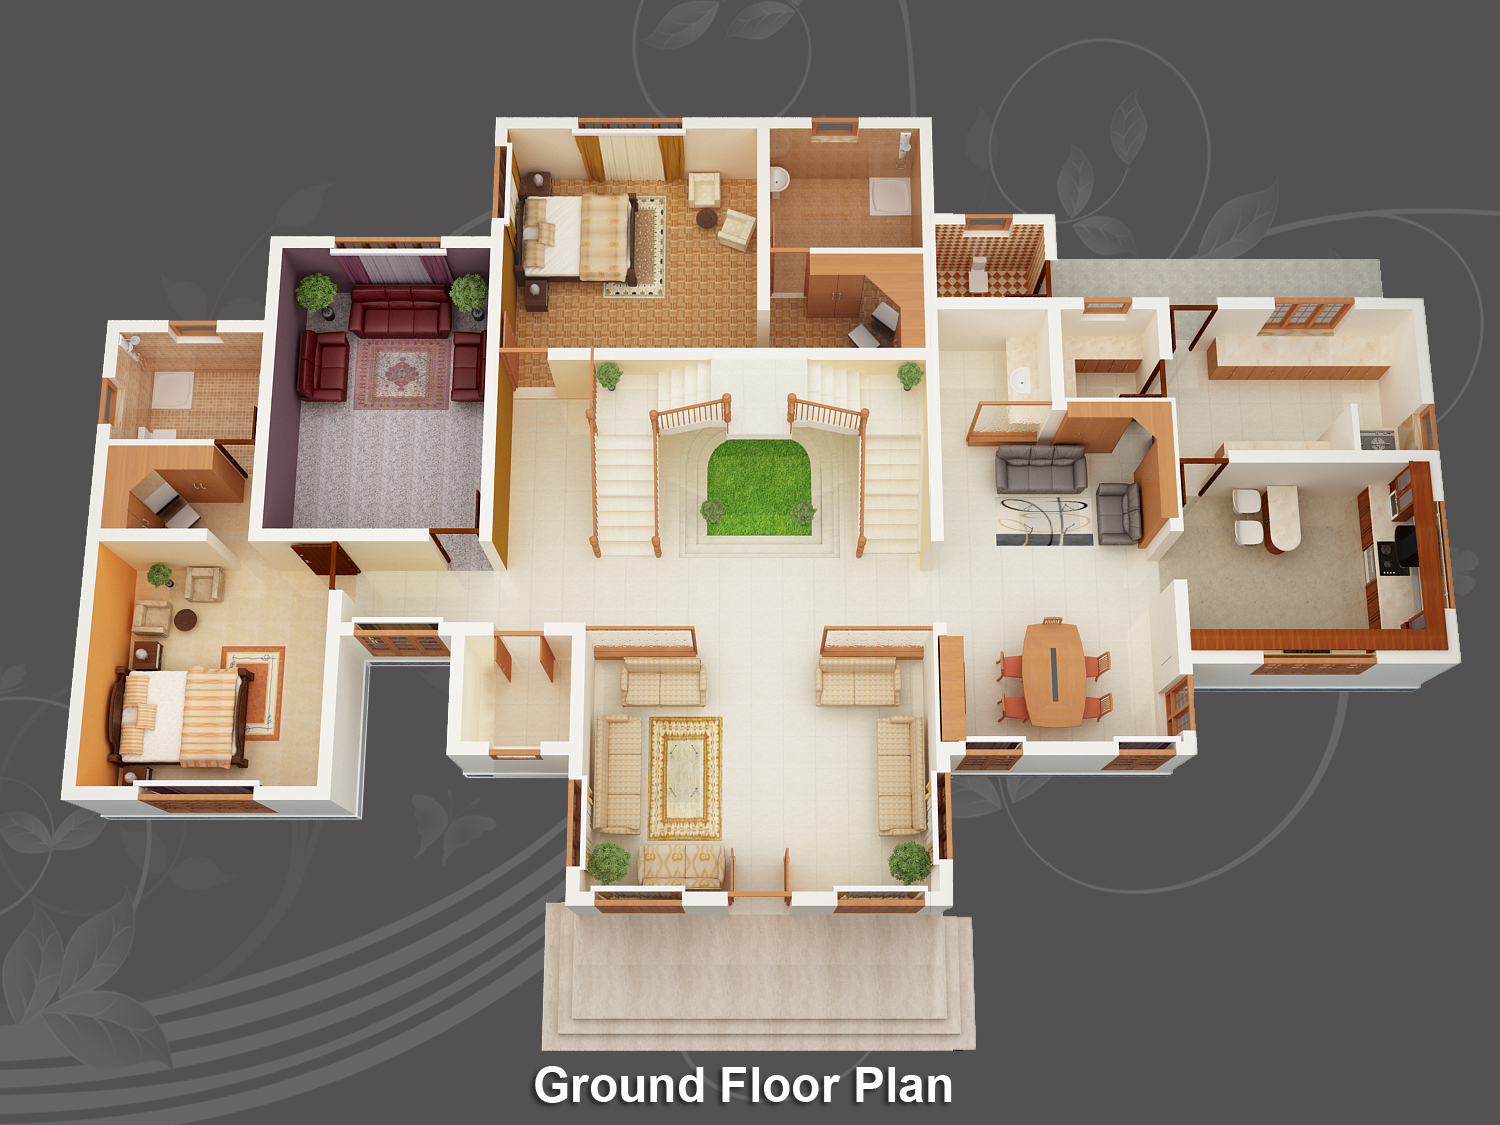 Evens construction pvt ltd 3d house plan 20 05 2011 for One floor house design plans 3d